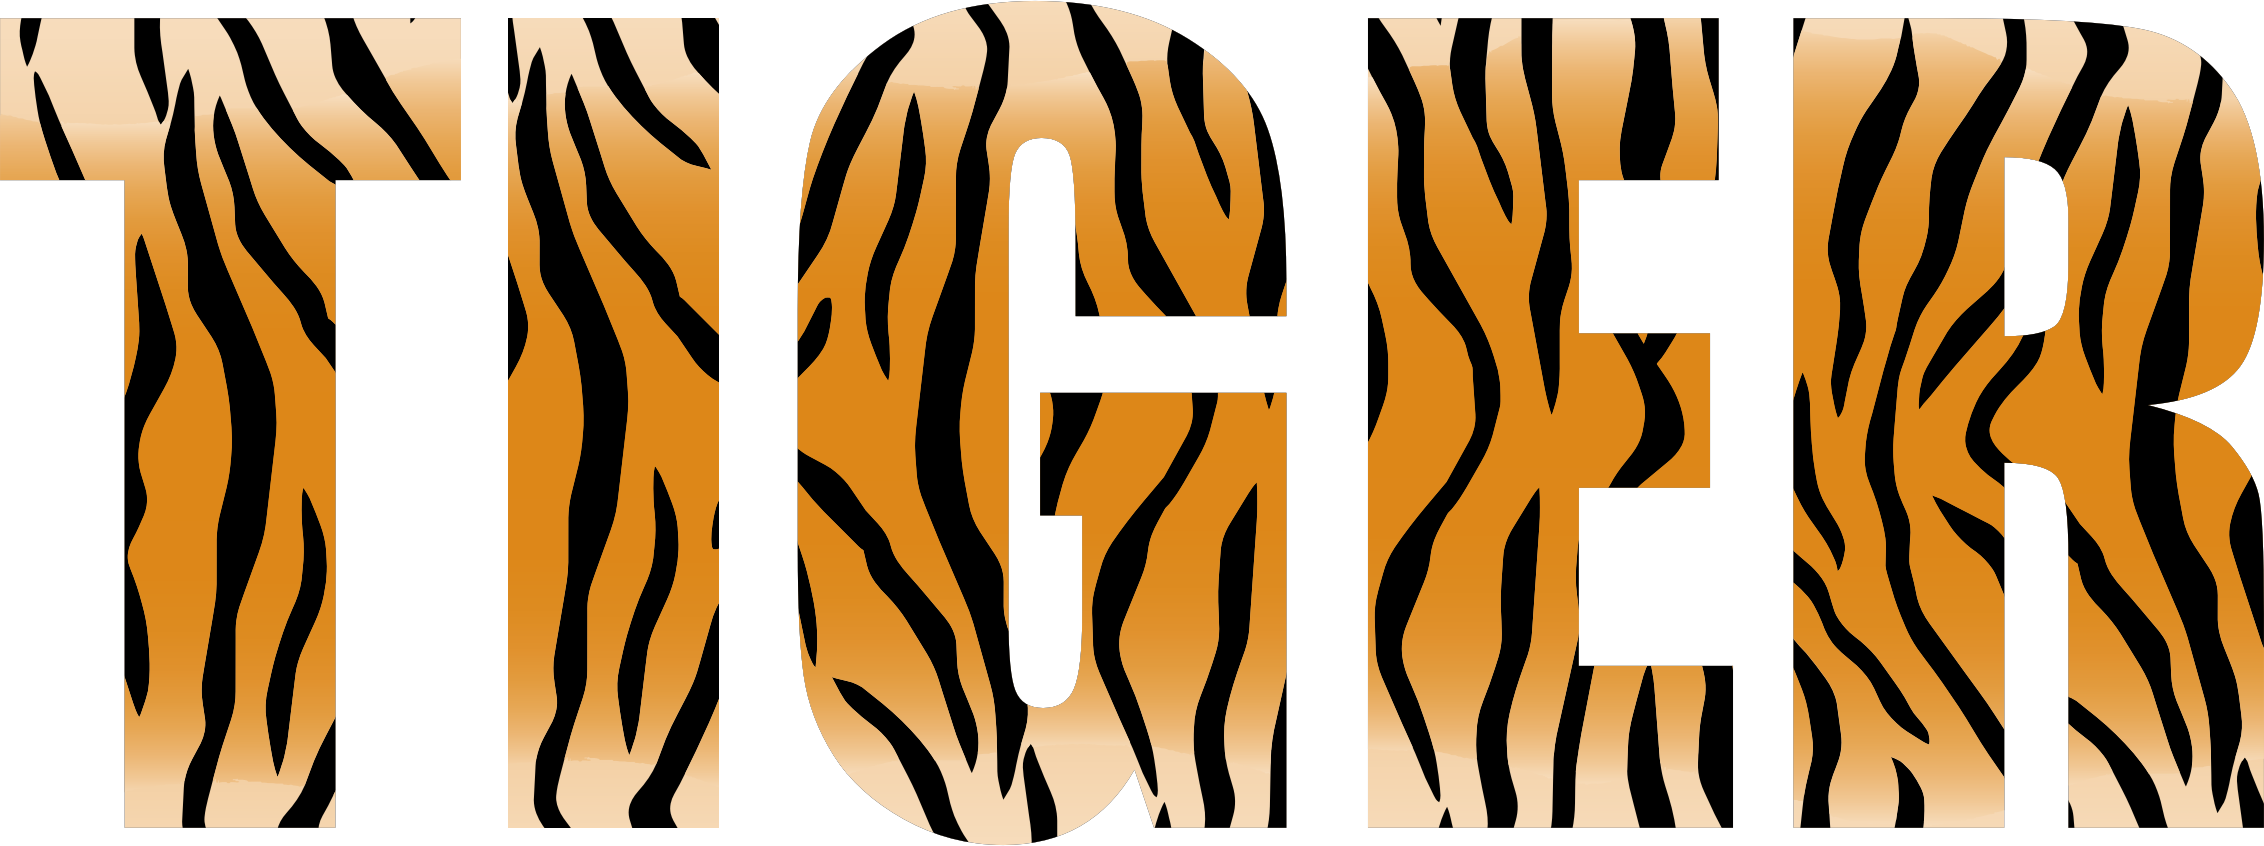 Stripes transparent tiger. Typography icons png free